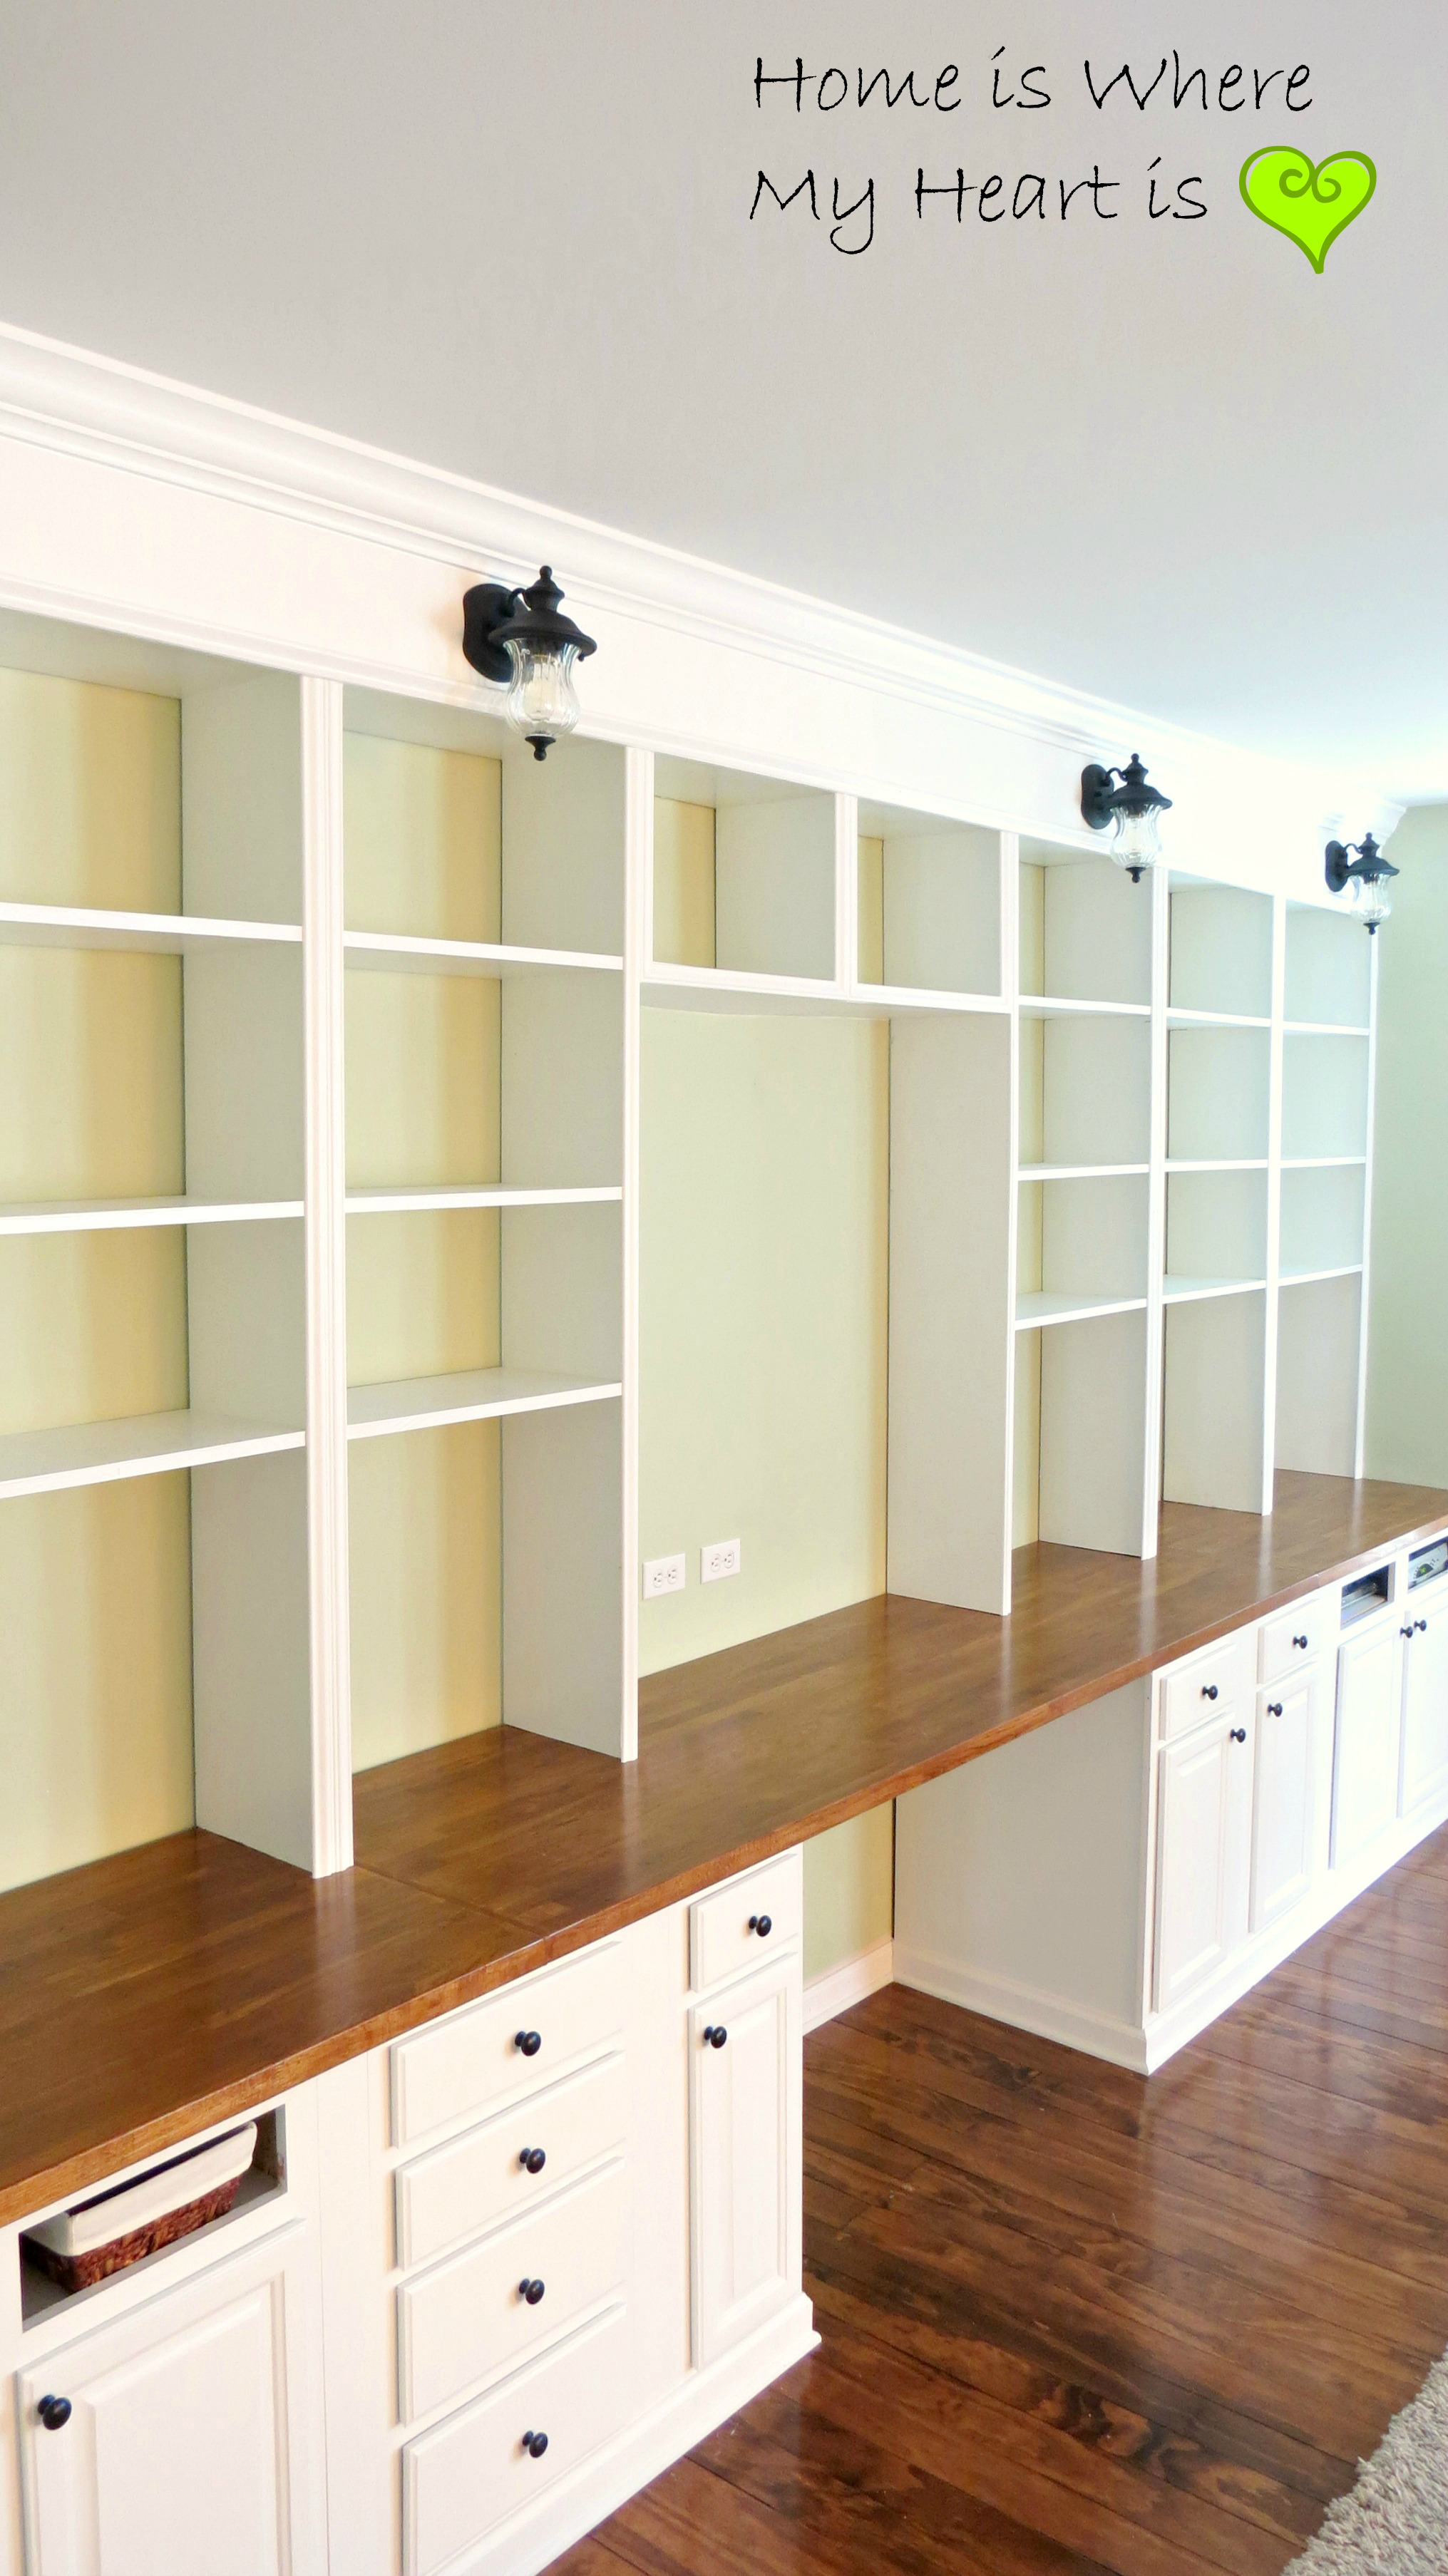 The completion of the construction of the bookcases for Built in nook shelves